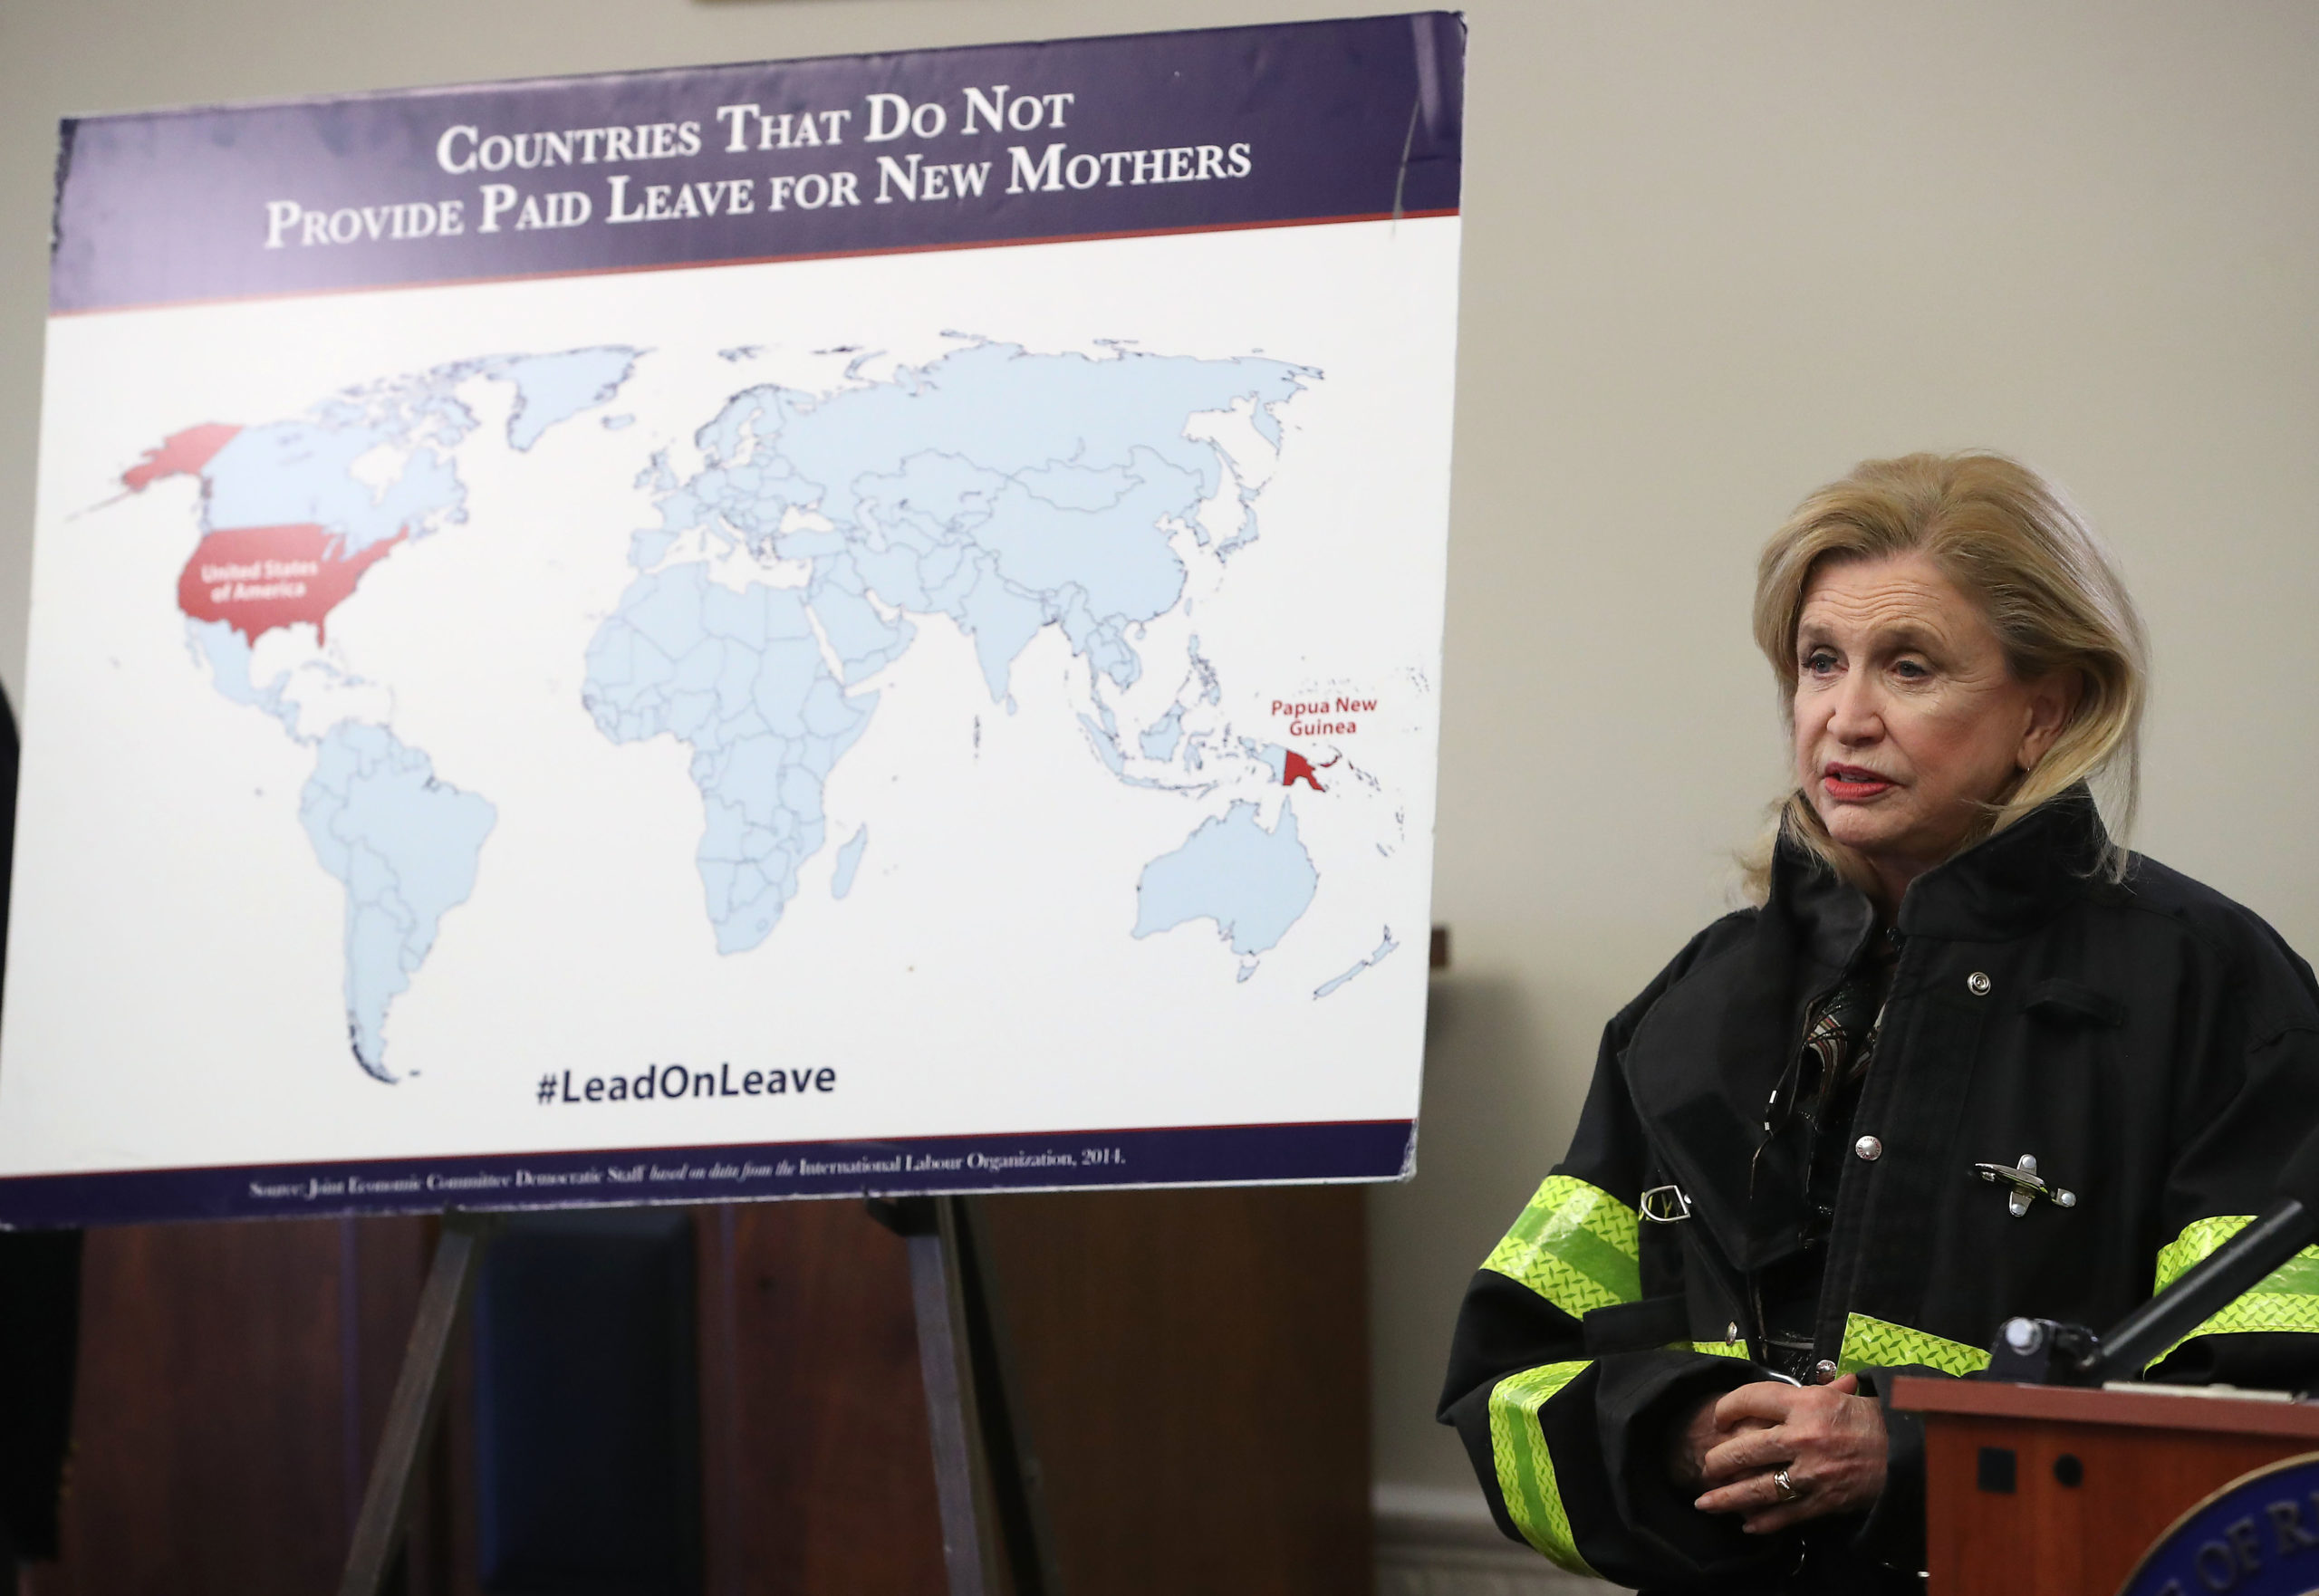 """WASHINGTON, DC - MARCH 05: Rep. Carolyn Maloney (D-NY) participates in a news conference to discuss the introduction of """"The Federal Employee Paid Leave Act"""" during a news conference on Capitol Hill, on March 5, 2019 in Washington, DC. The FEPLA act would provide 12 weeks of paid family leave for federal employees. (Photo by Mark Wilson/Getty Images)"""